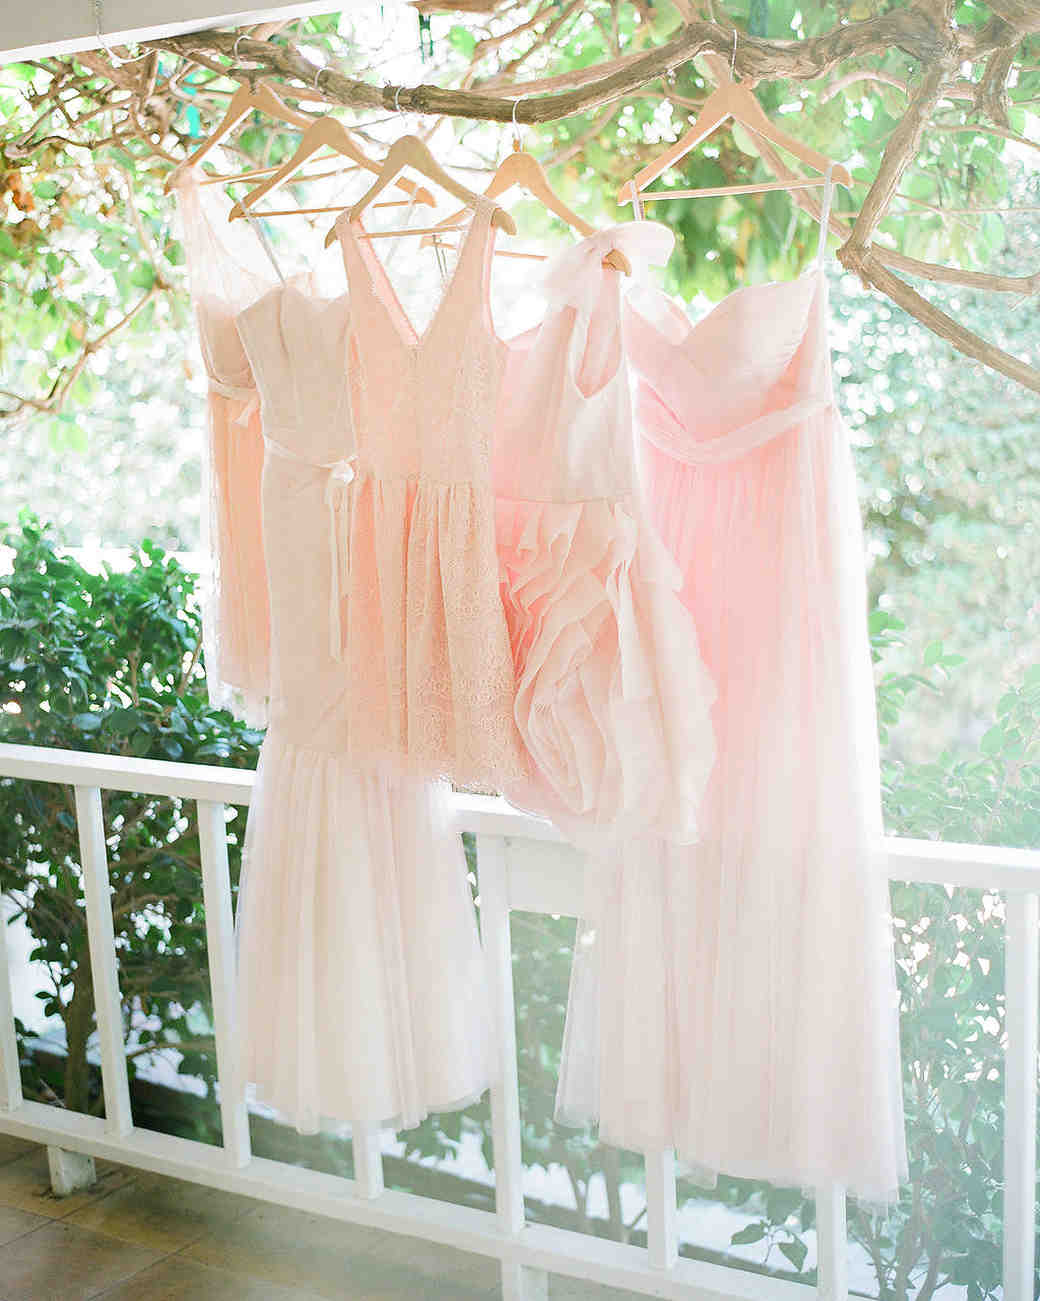 Light Pink Bridesmaid Dresses Hanging Off Branch